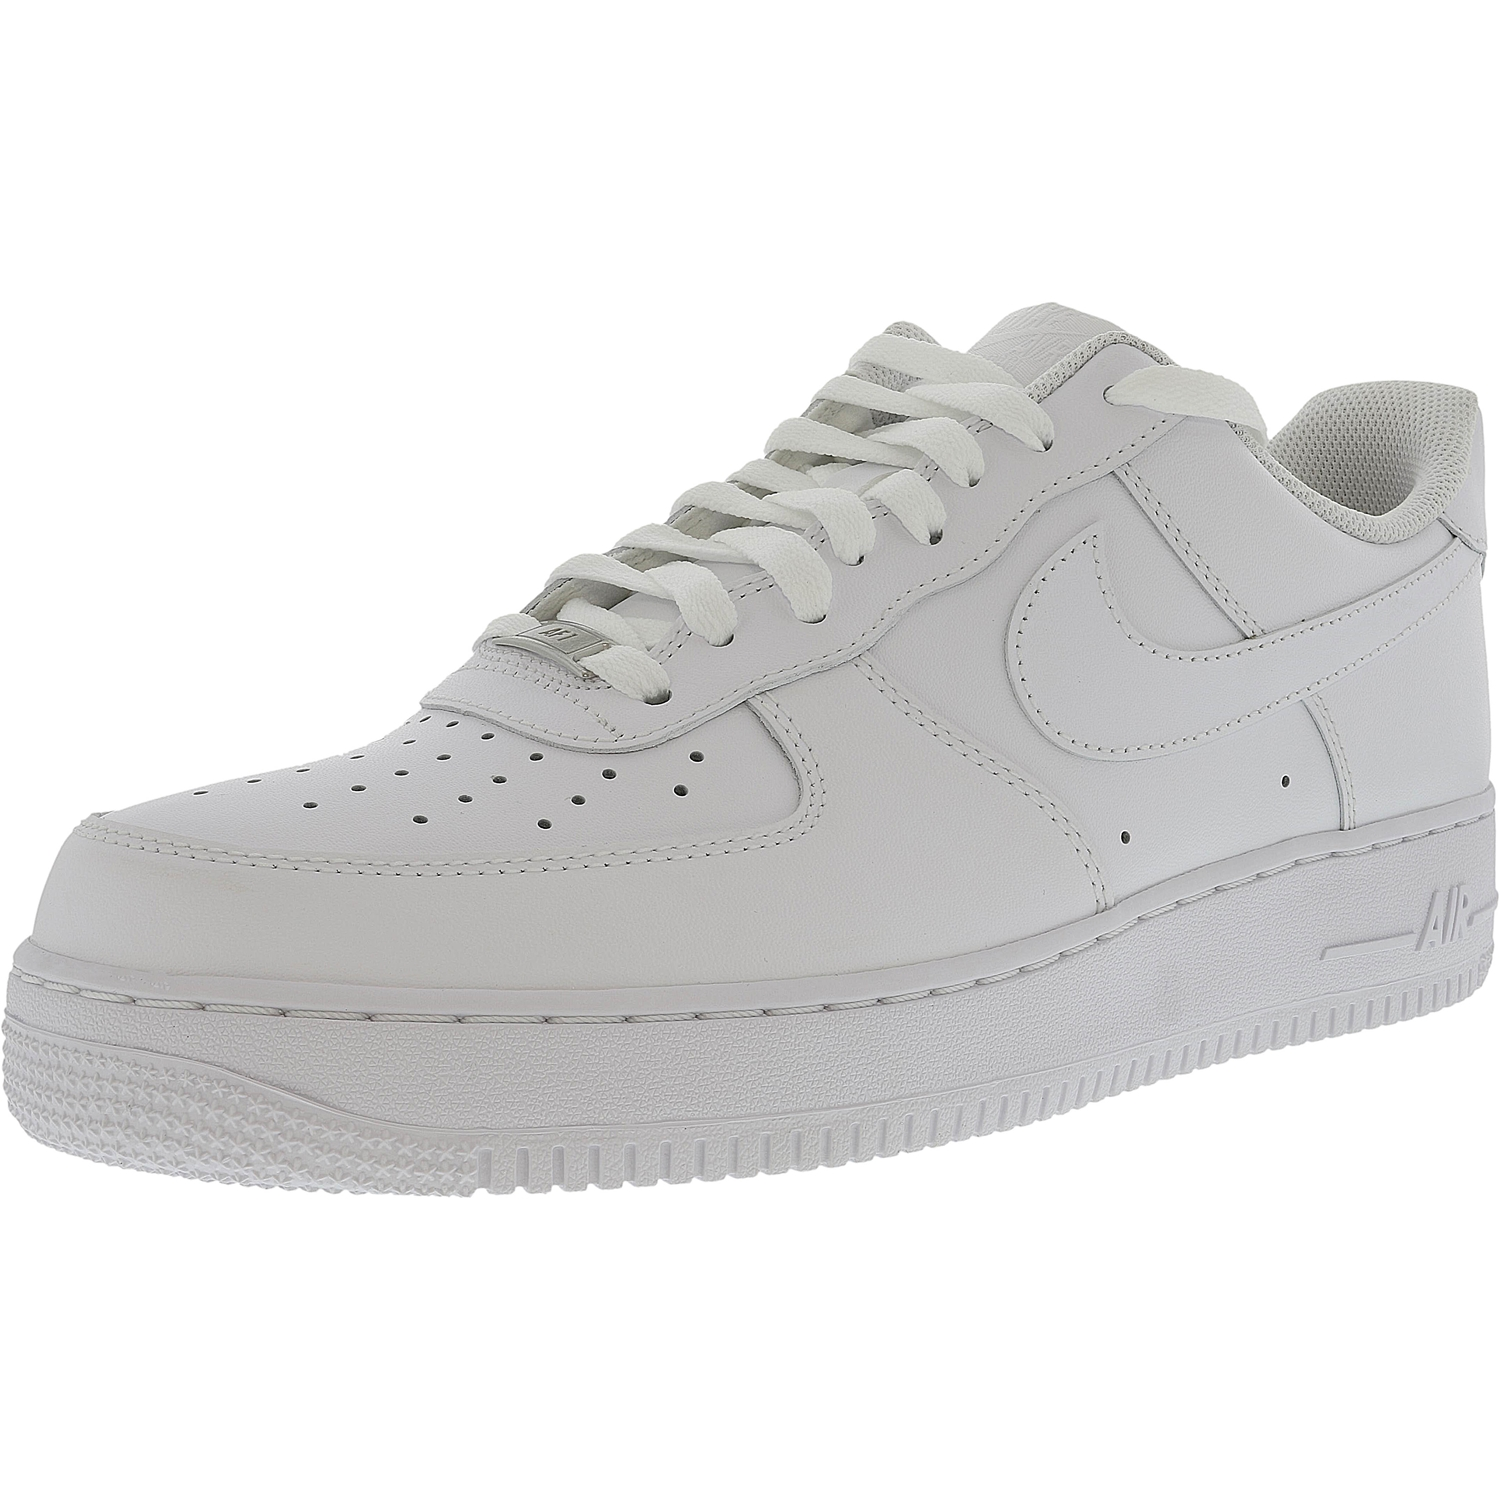 Nike Men's Air Force 1 07 White / Ankle-High Leather Fash...